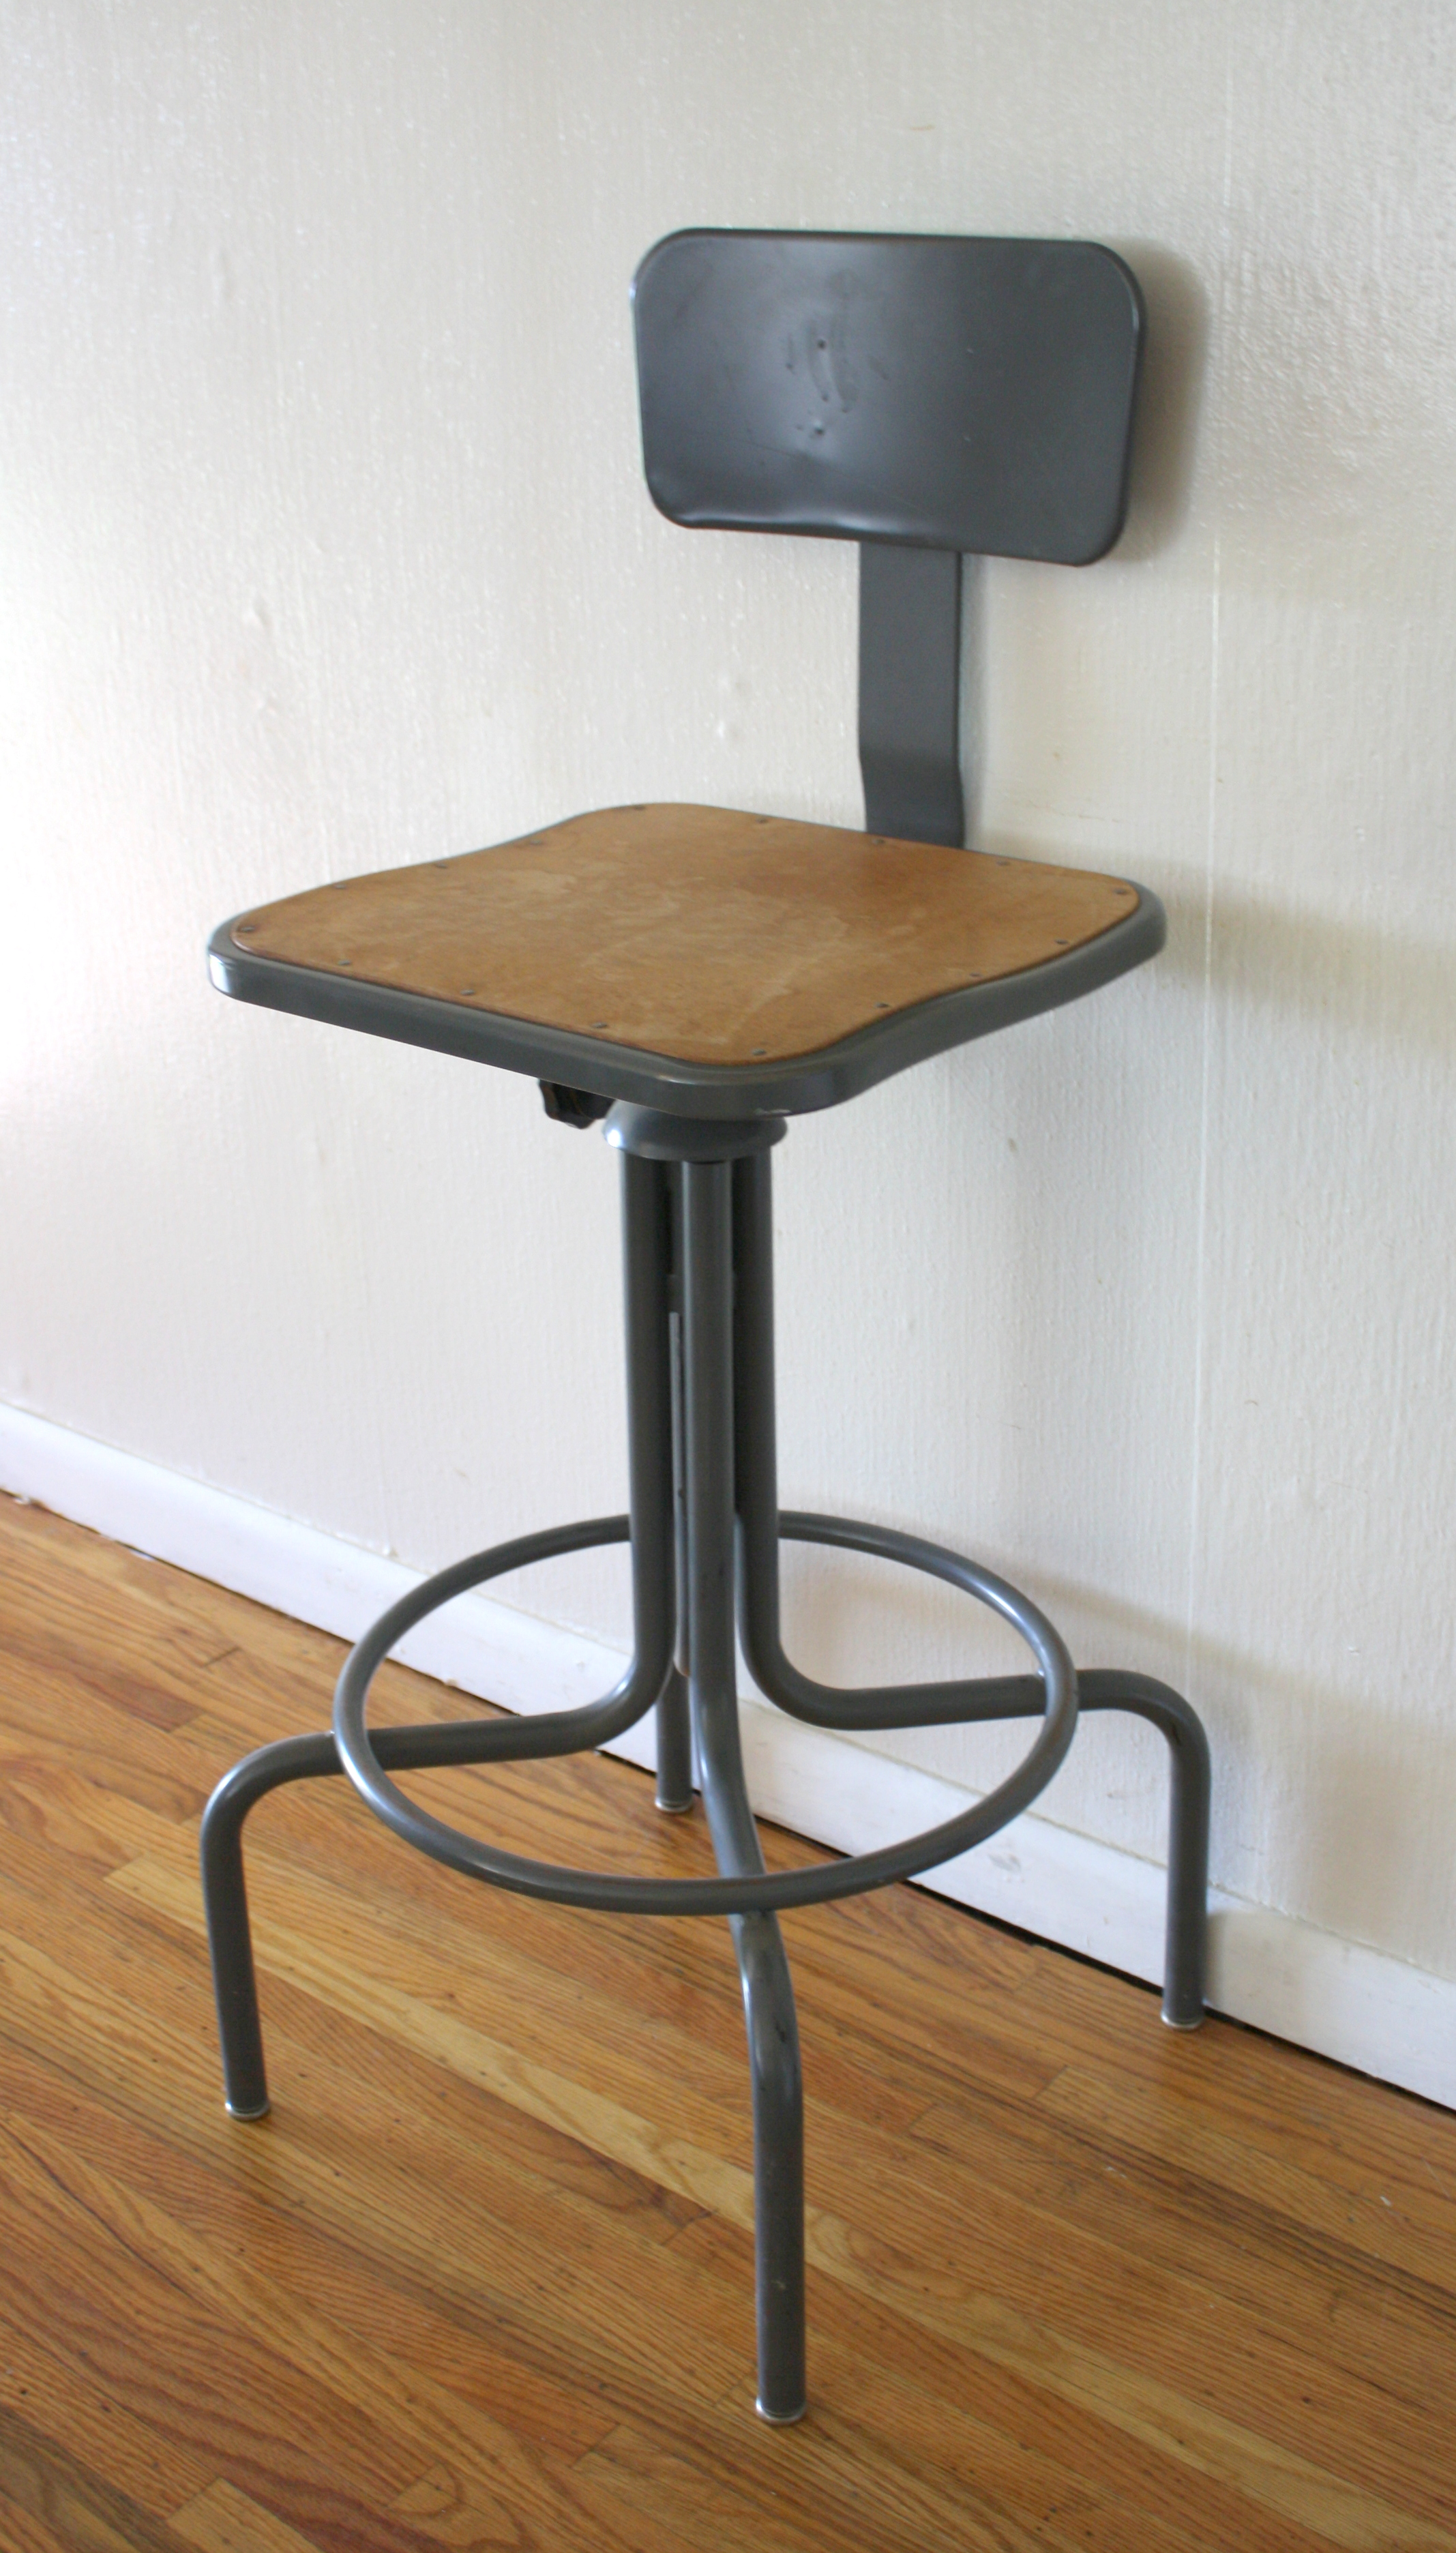 industrial drafting stool 2 & industrial drafting stool 2 | Picked Vintage